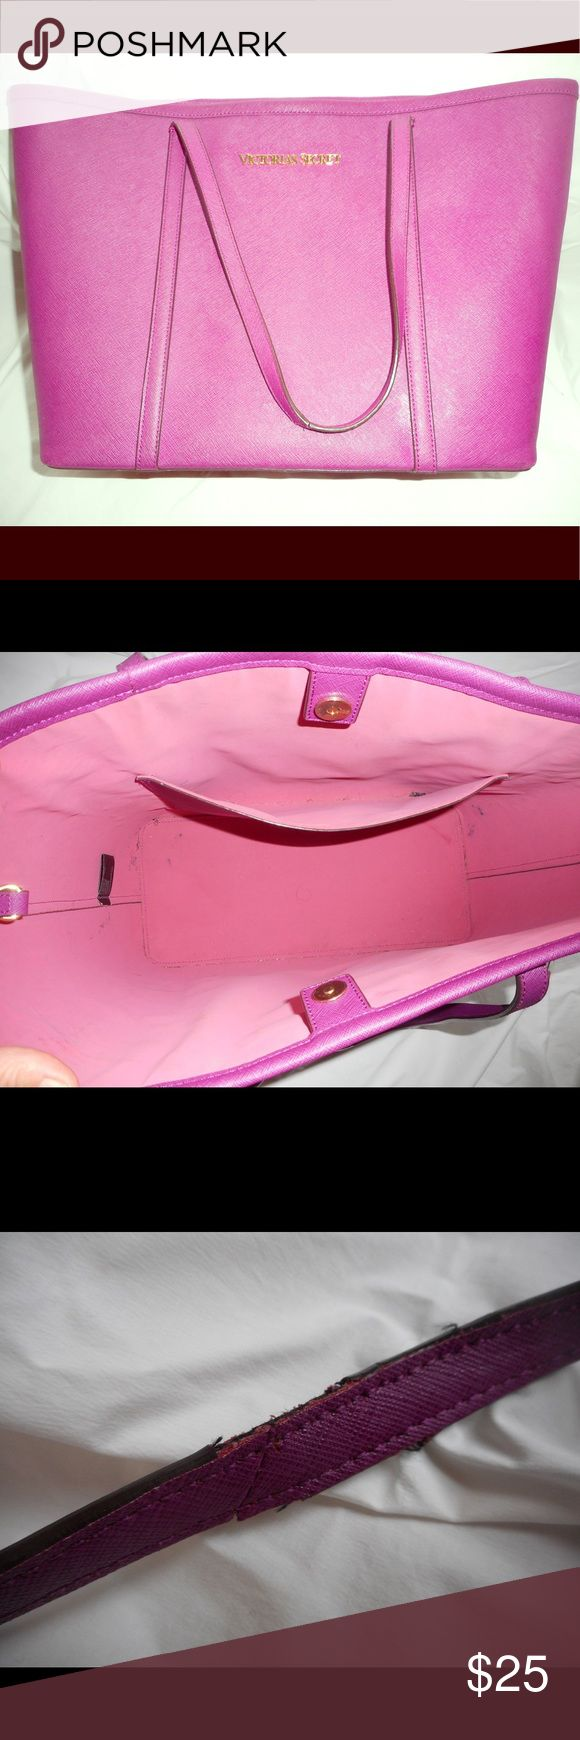 Victoria's Secret purple shoulder bag Used a few times. Very sturdy. One small flaw on one strap (see pic) Victoria's Secret Bags Shoulder Bags